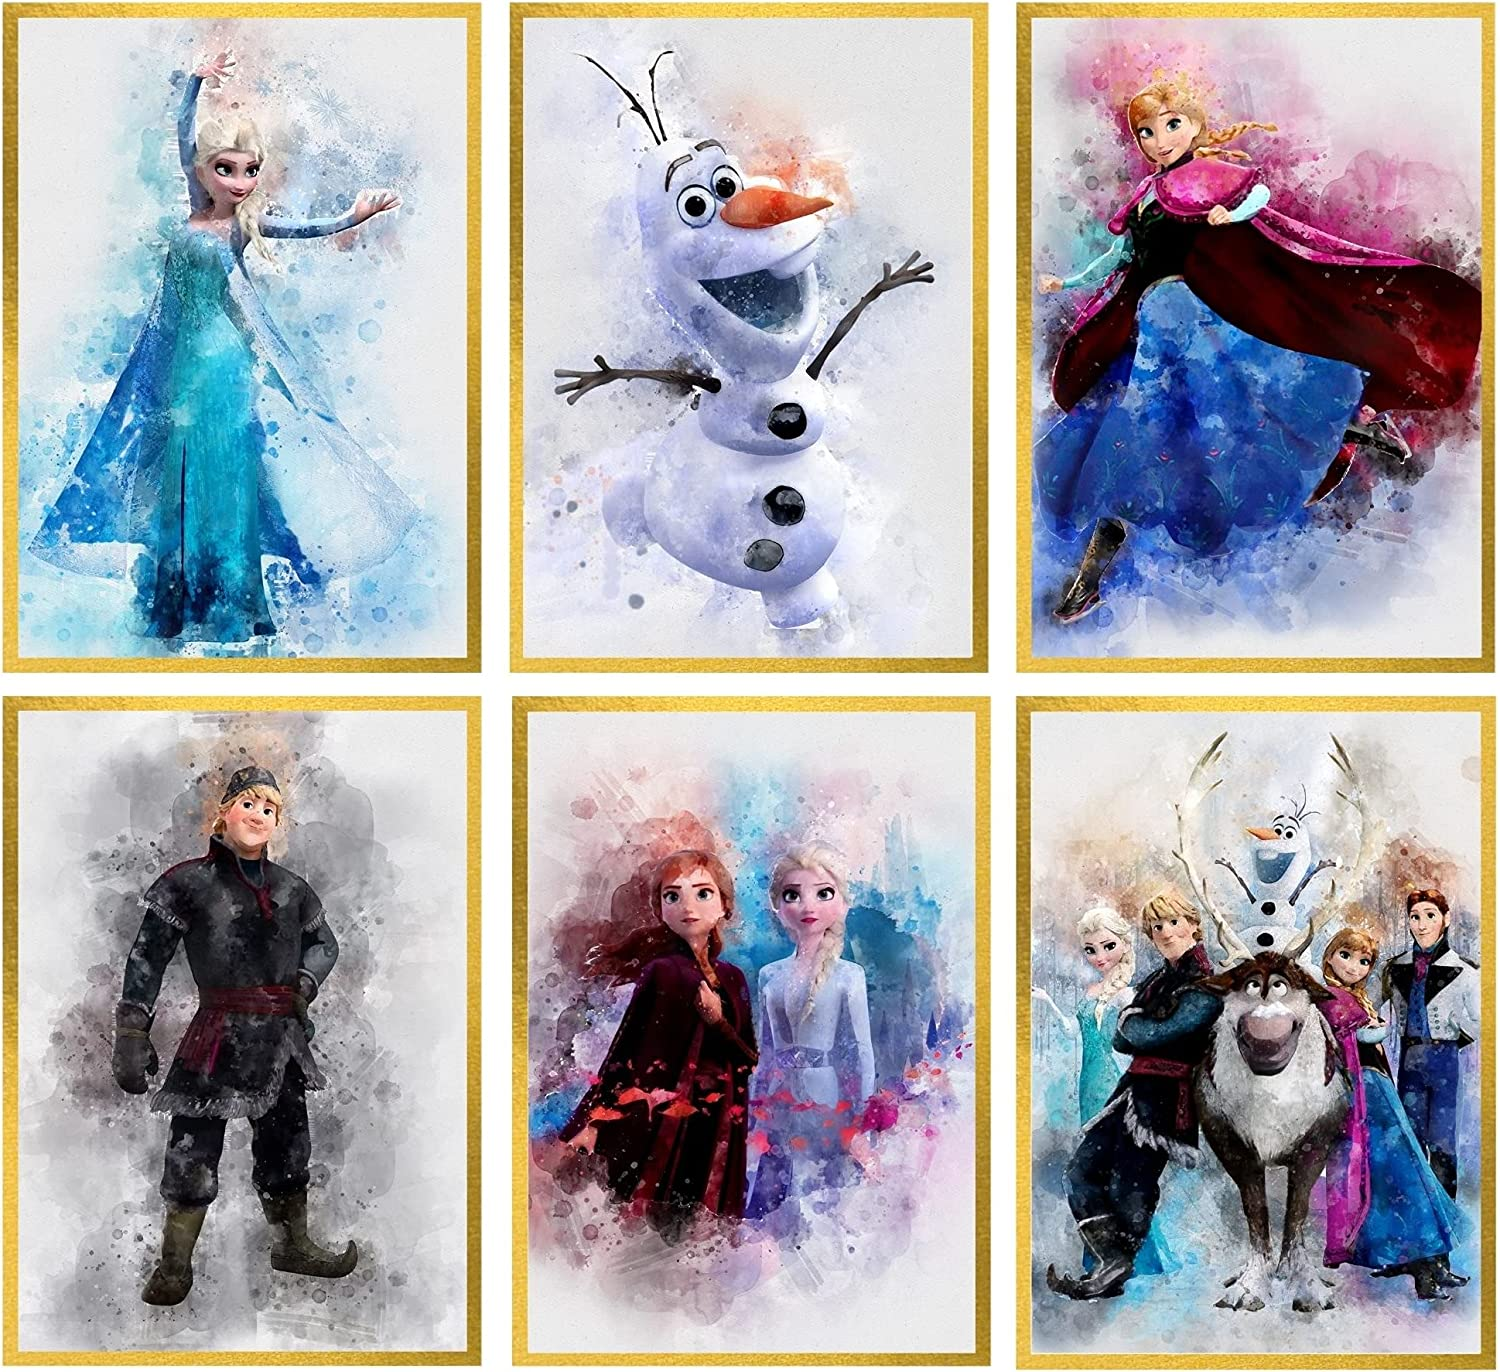 Frozen Wall Decor Posters for Girls Room – Unframed Set of 6 Prints, 8x10 Inch, Watercolor Art Pictures of Elsa Anna Olaf Kristoff Sven for Tween Girl, Kids Bedroom Playroom Birthday Party Decoration Frozen 1 2